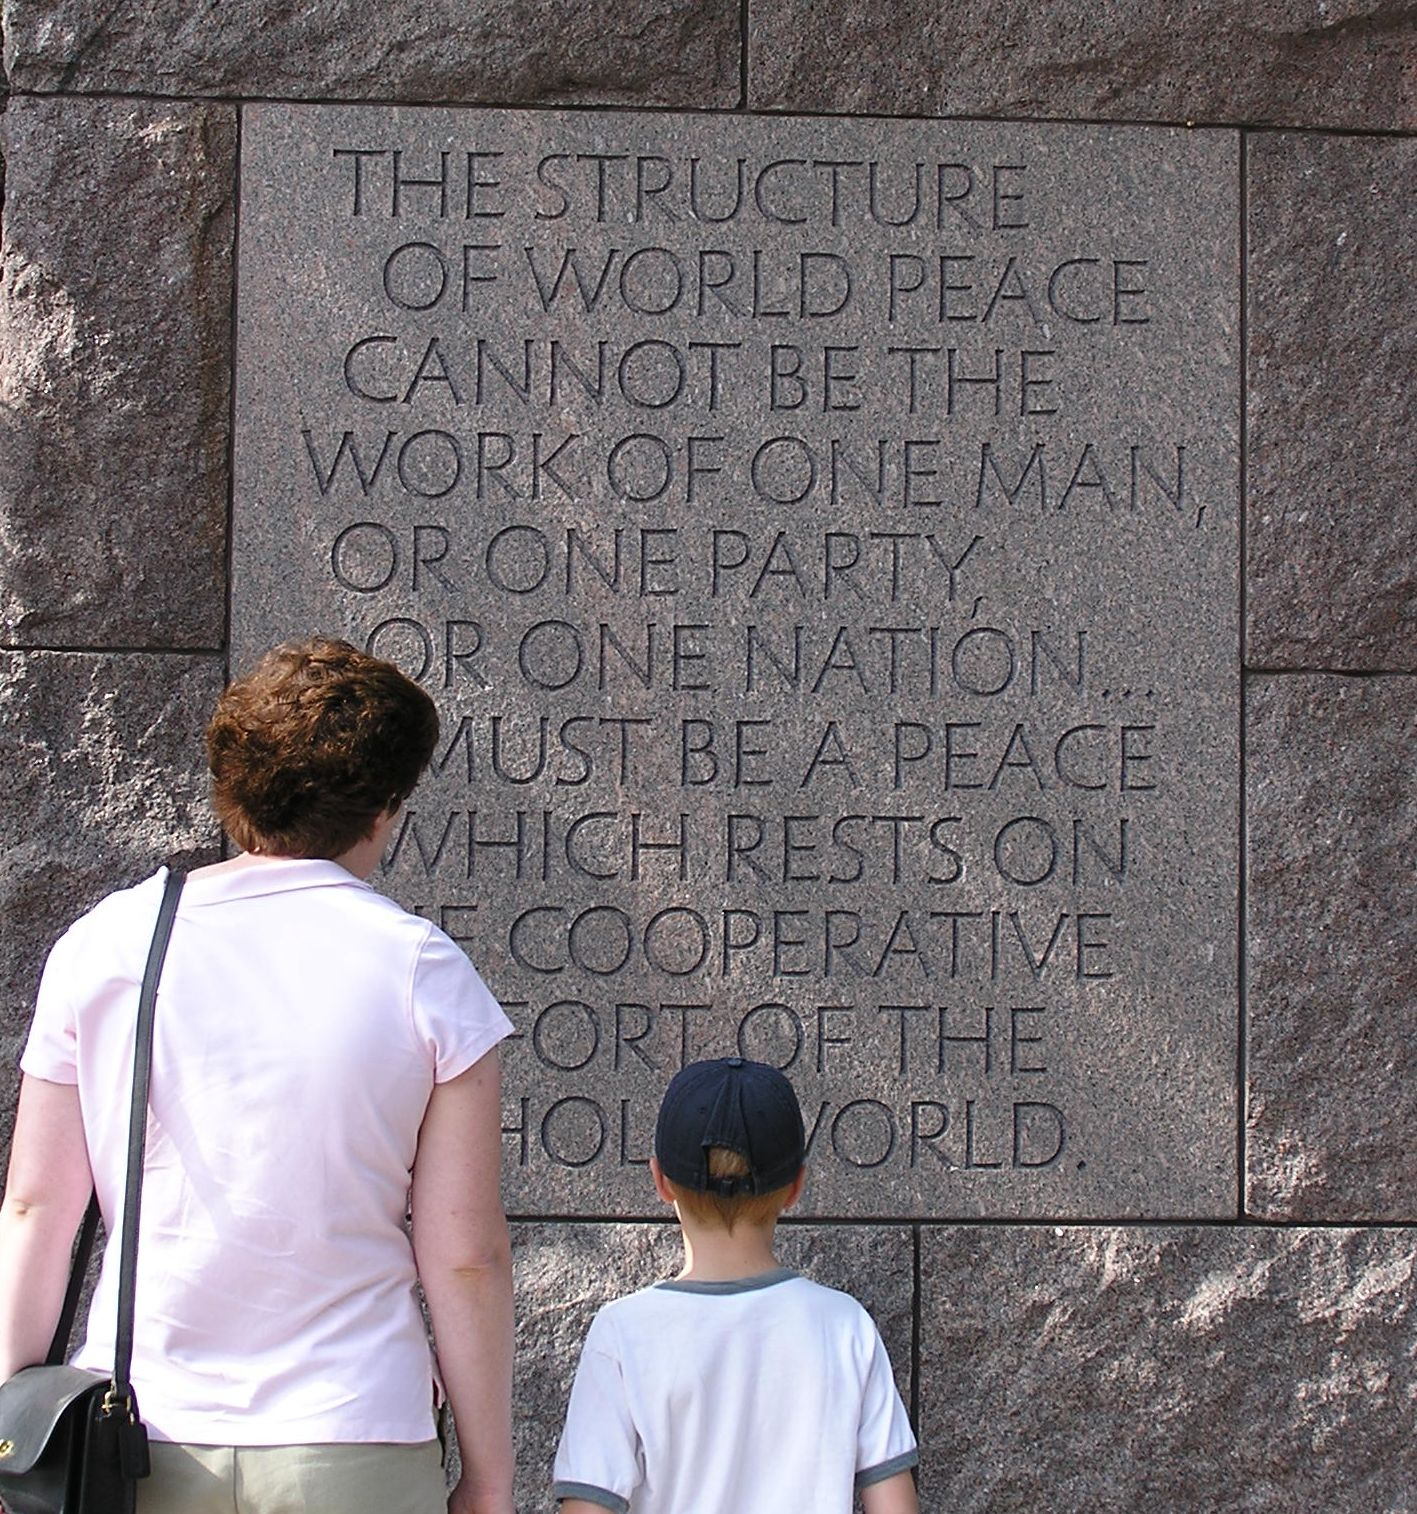 fdr quote, memorial, washington dc